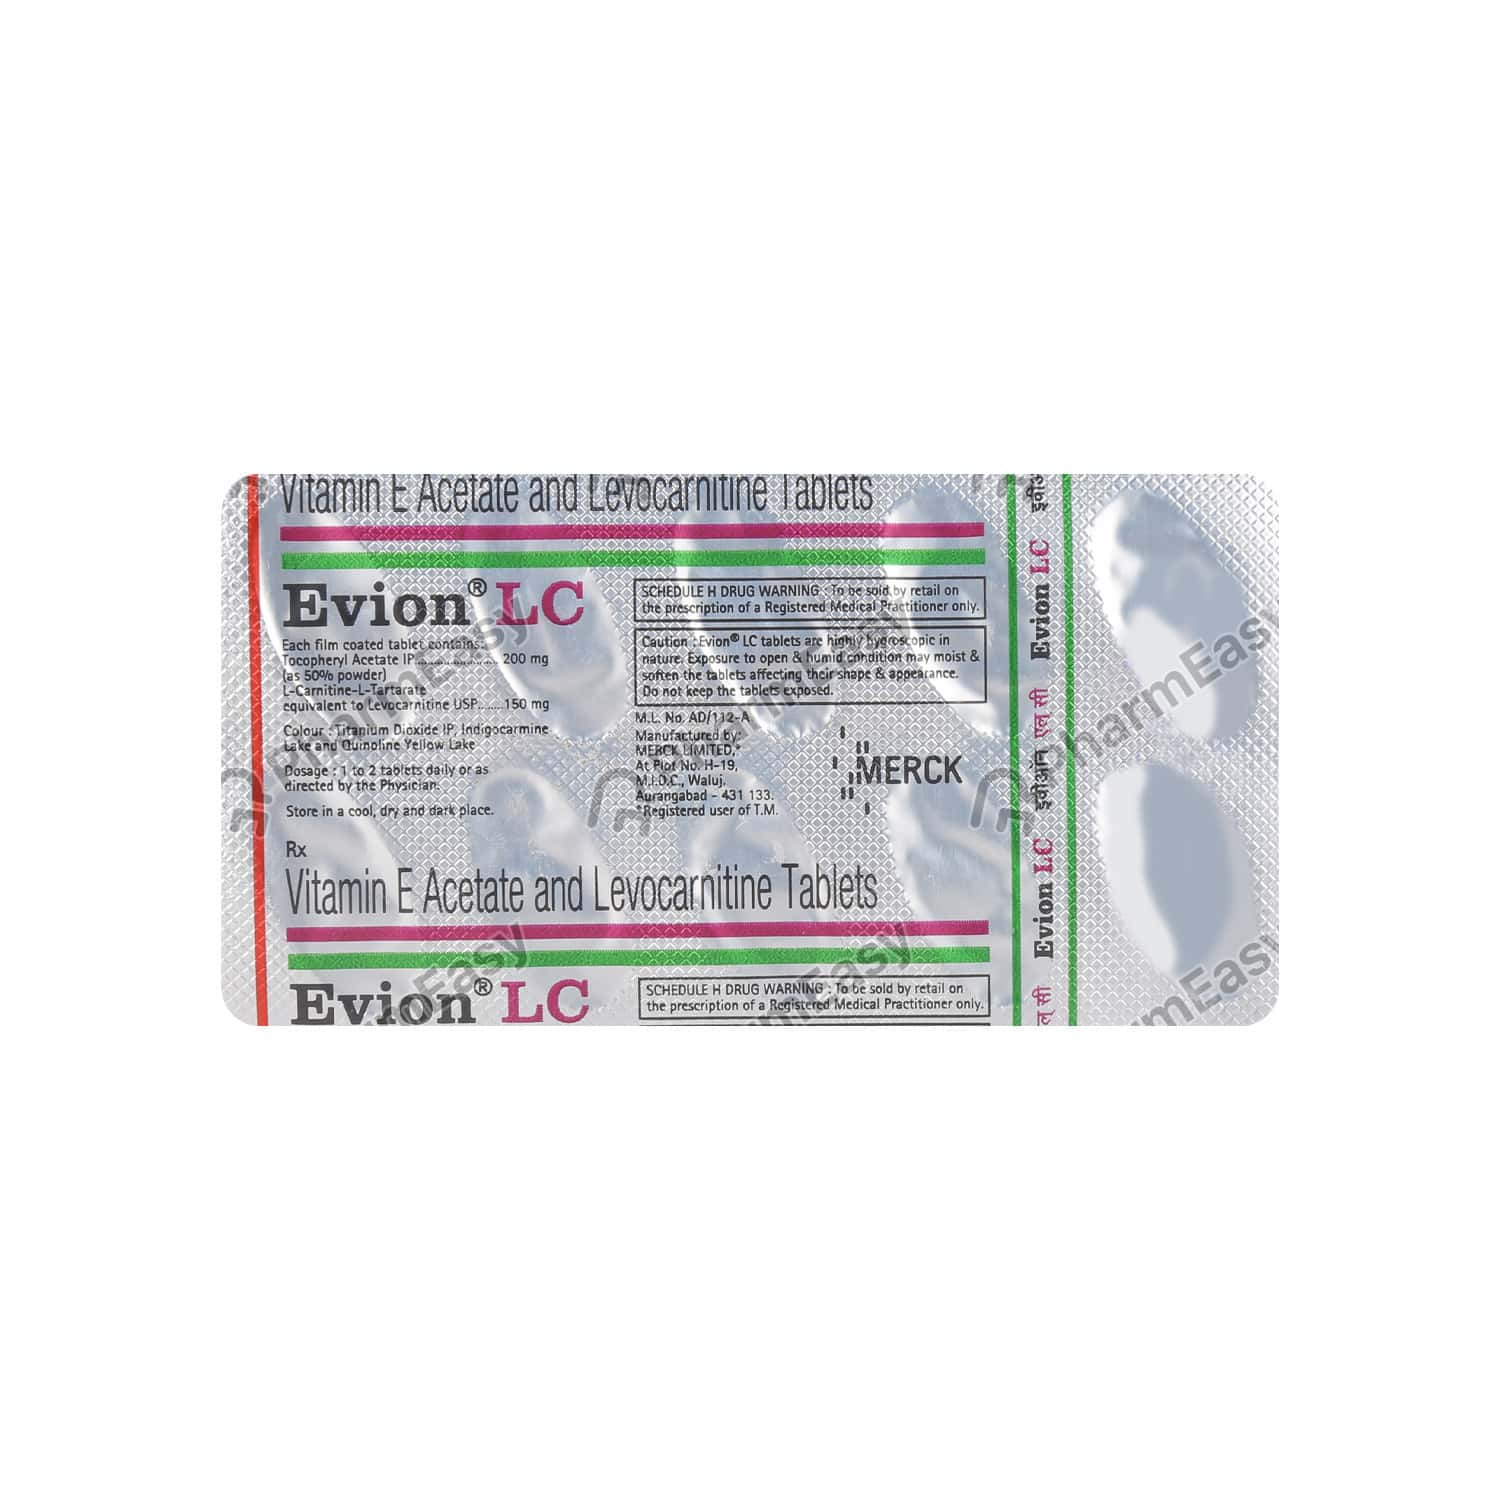 Evion Lc Strip Of 10 Tablets